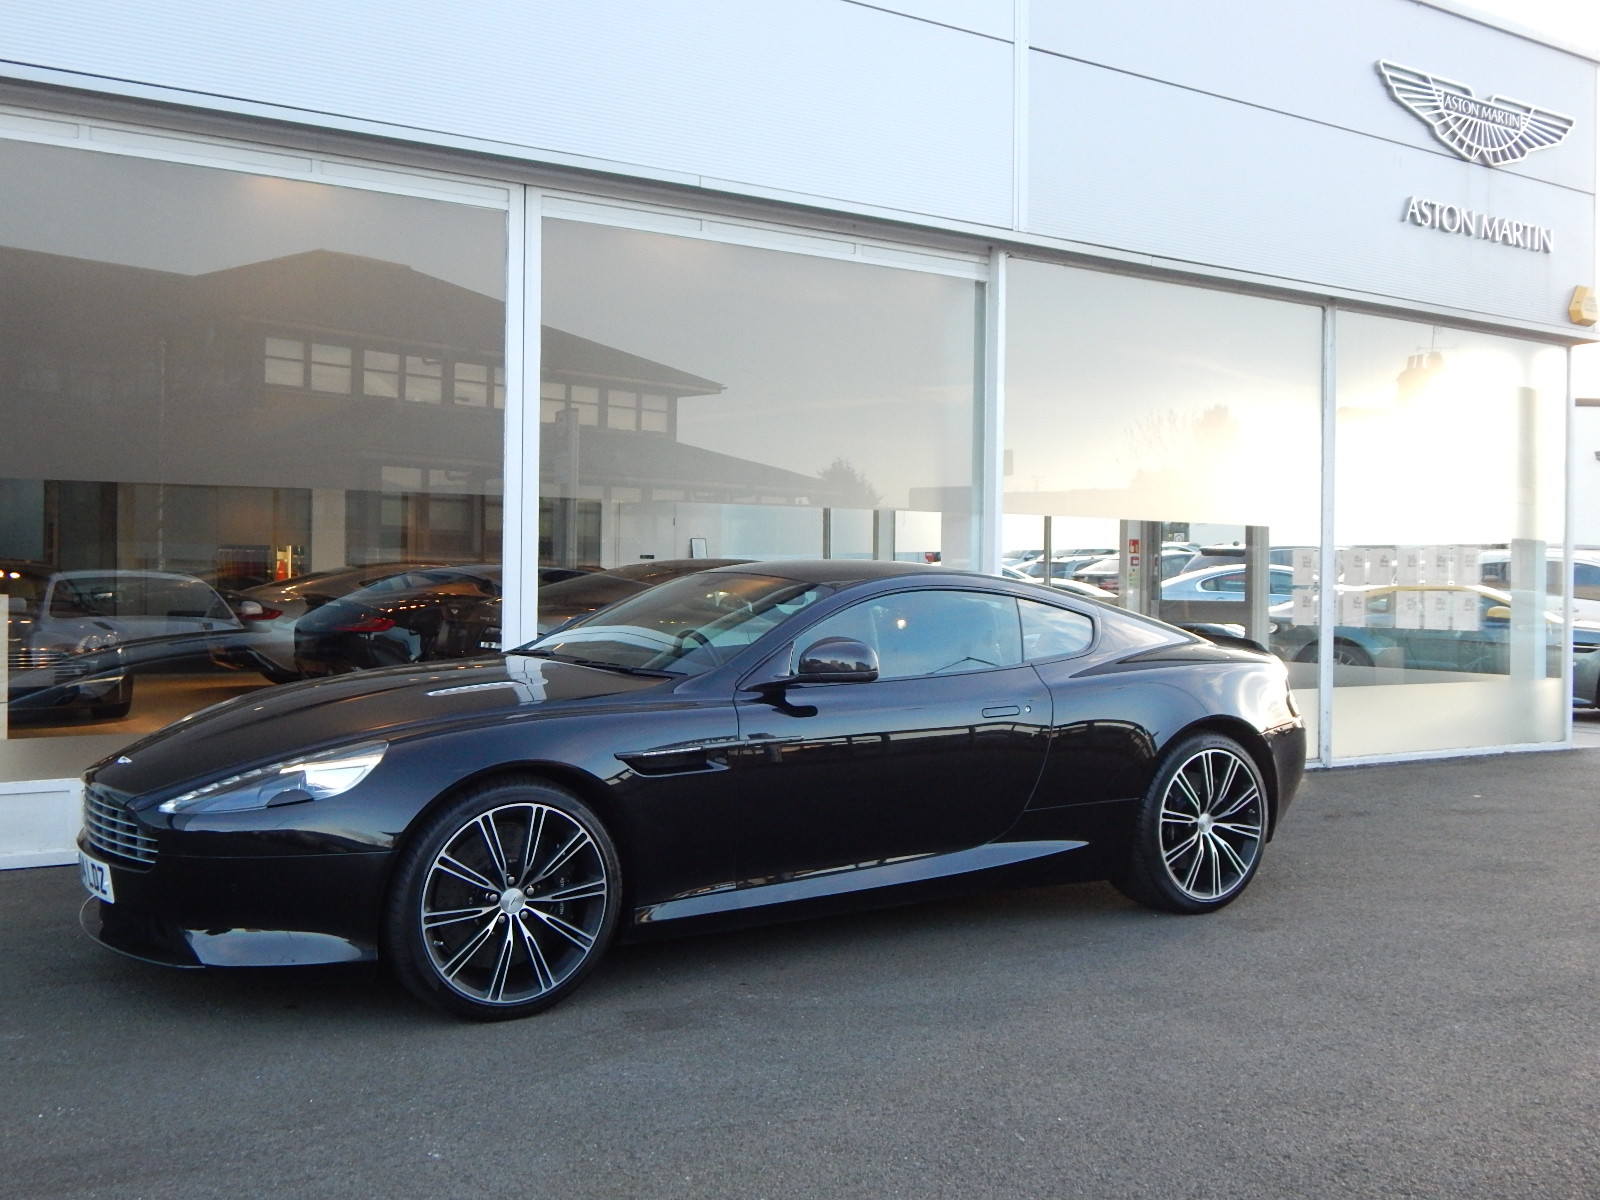 Aston Martin DB9 V12 2dr Touchtronic, Carbon Edition image 18